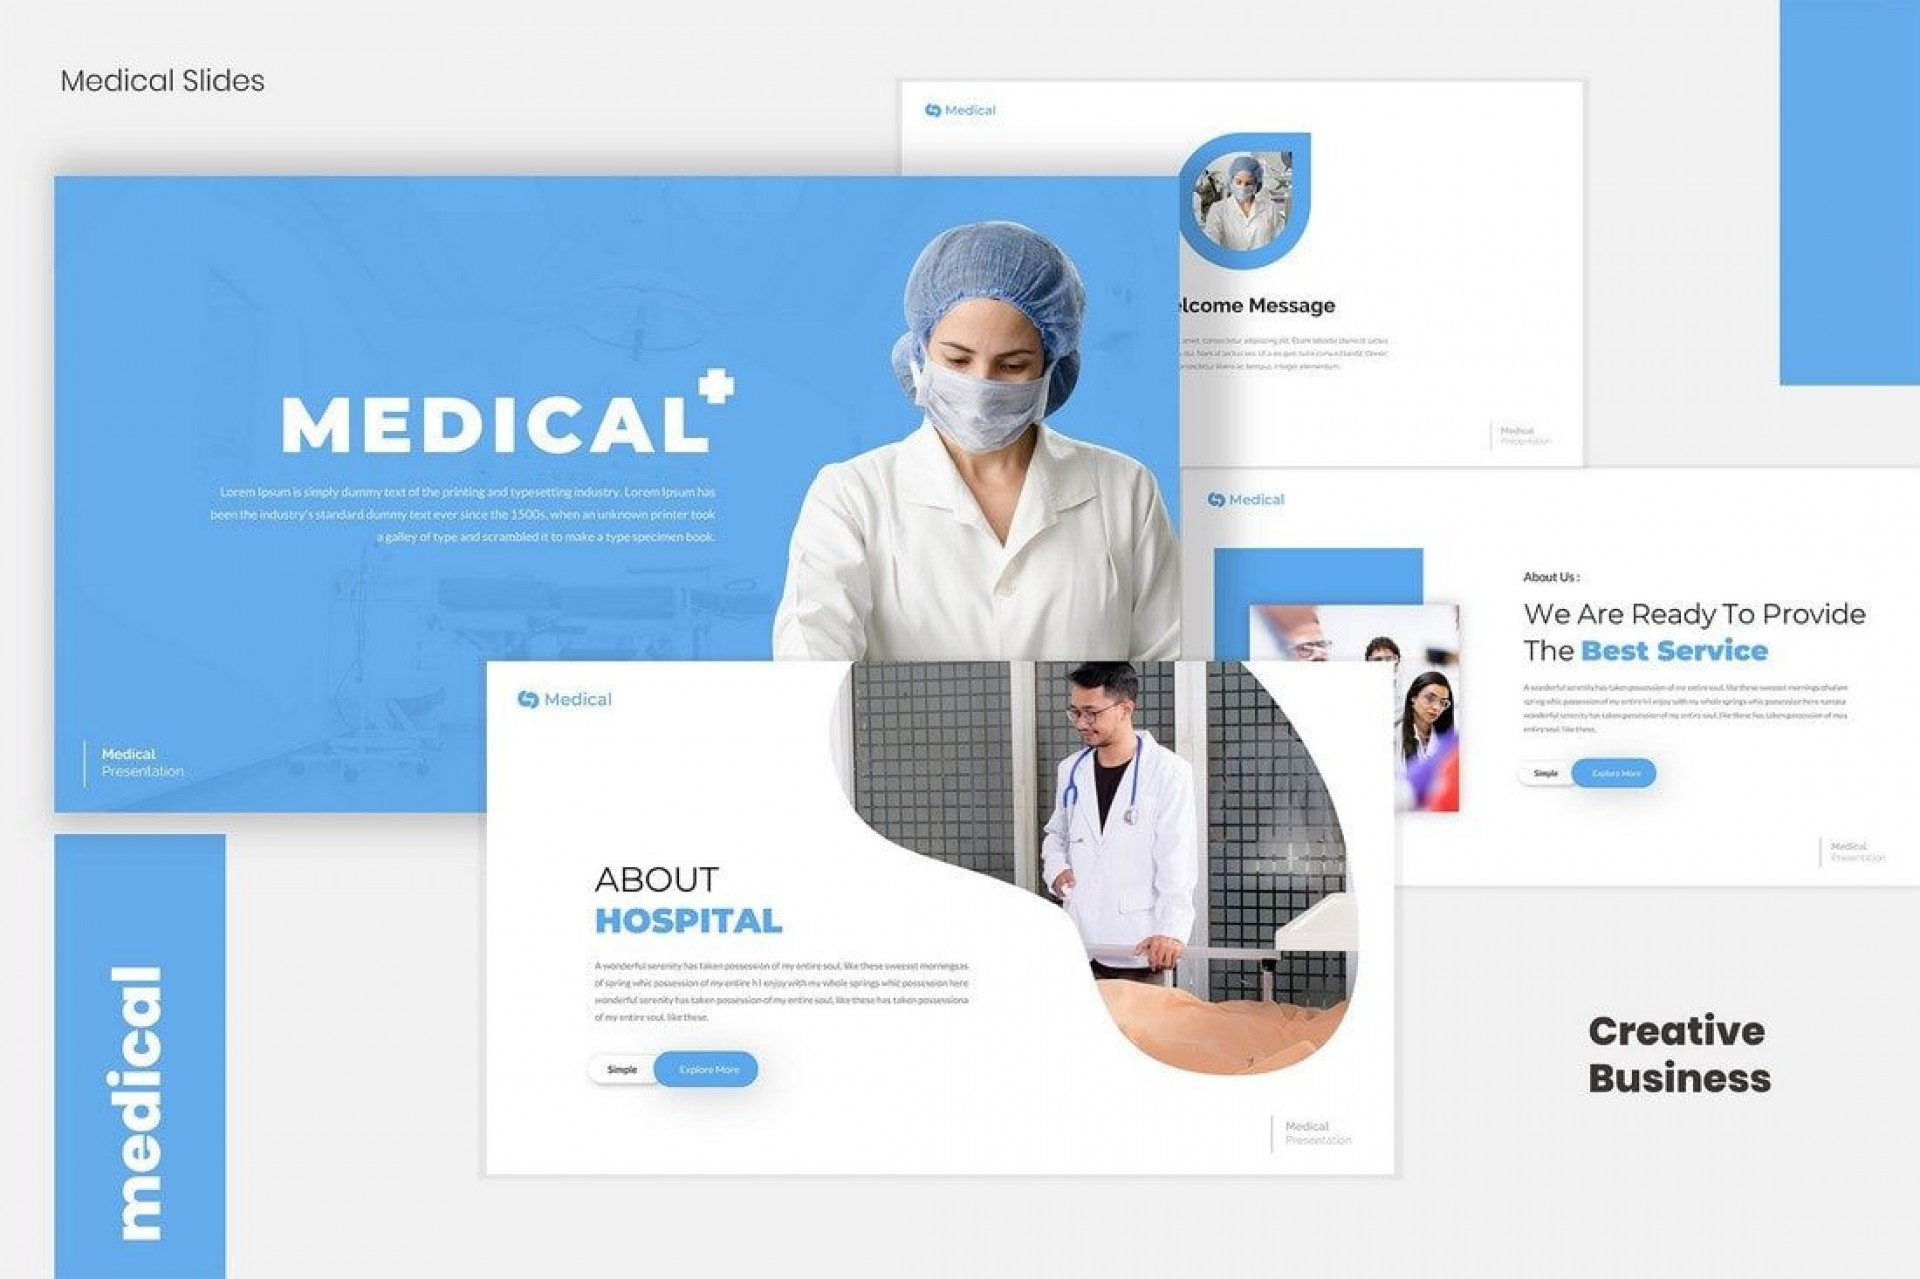 006 Archaicawful Powerpoint Presentation Template Free Download Medical High Resolution  Animated1920